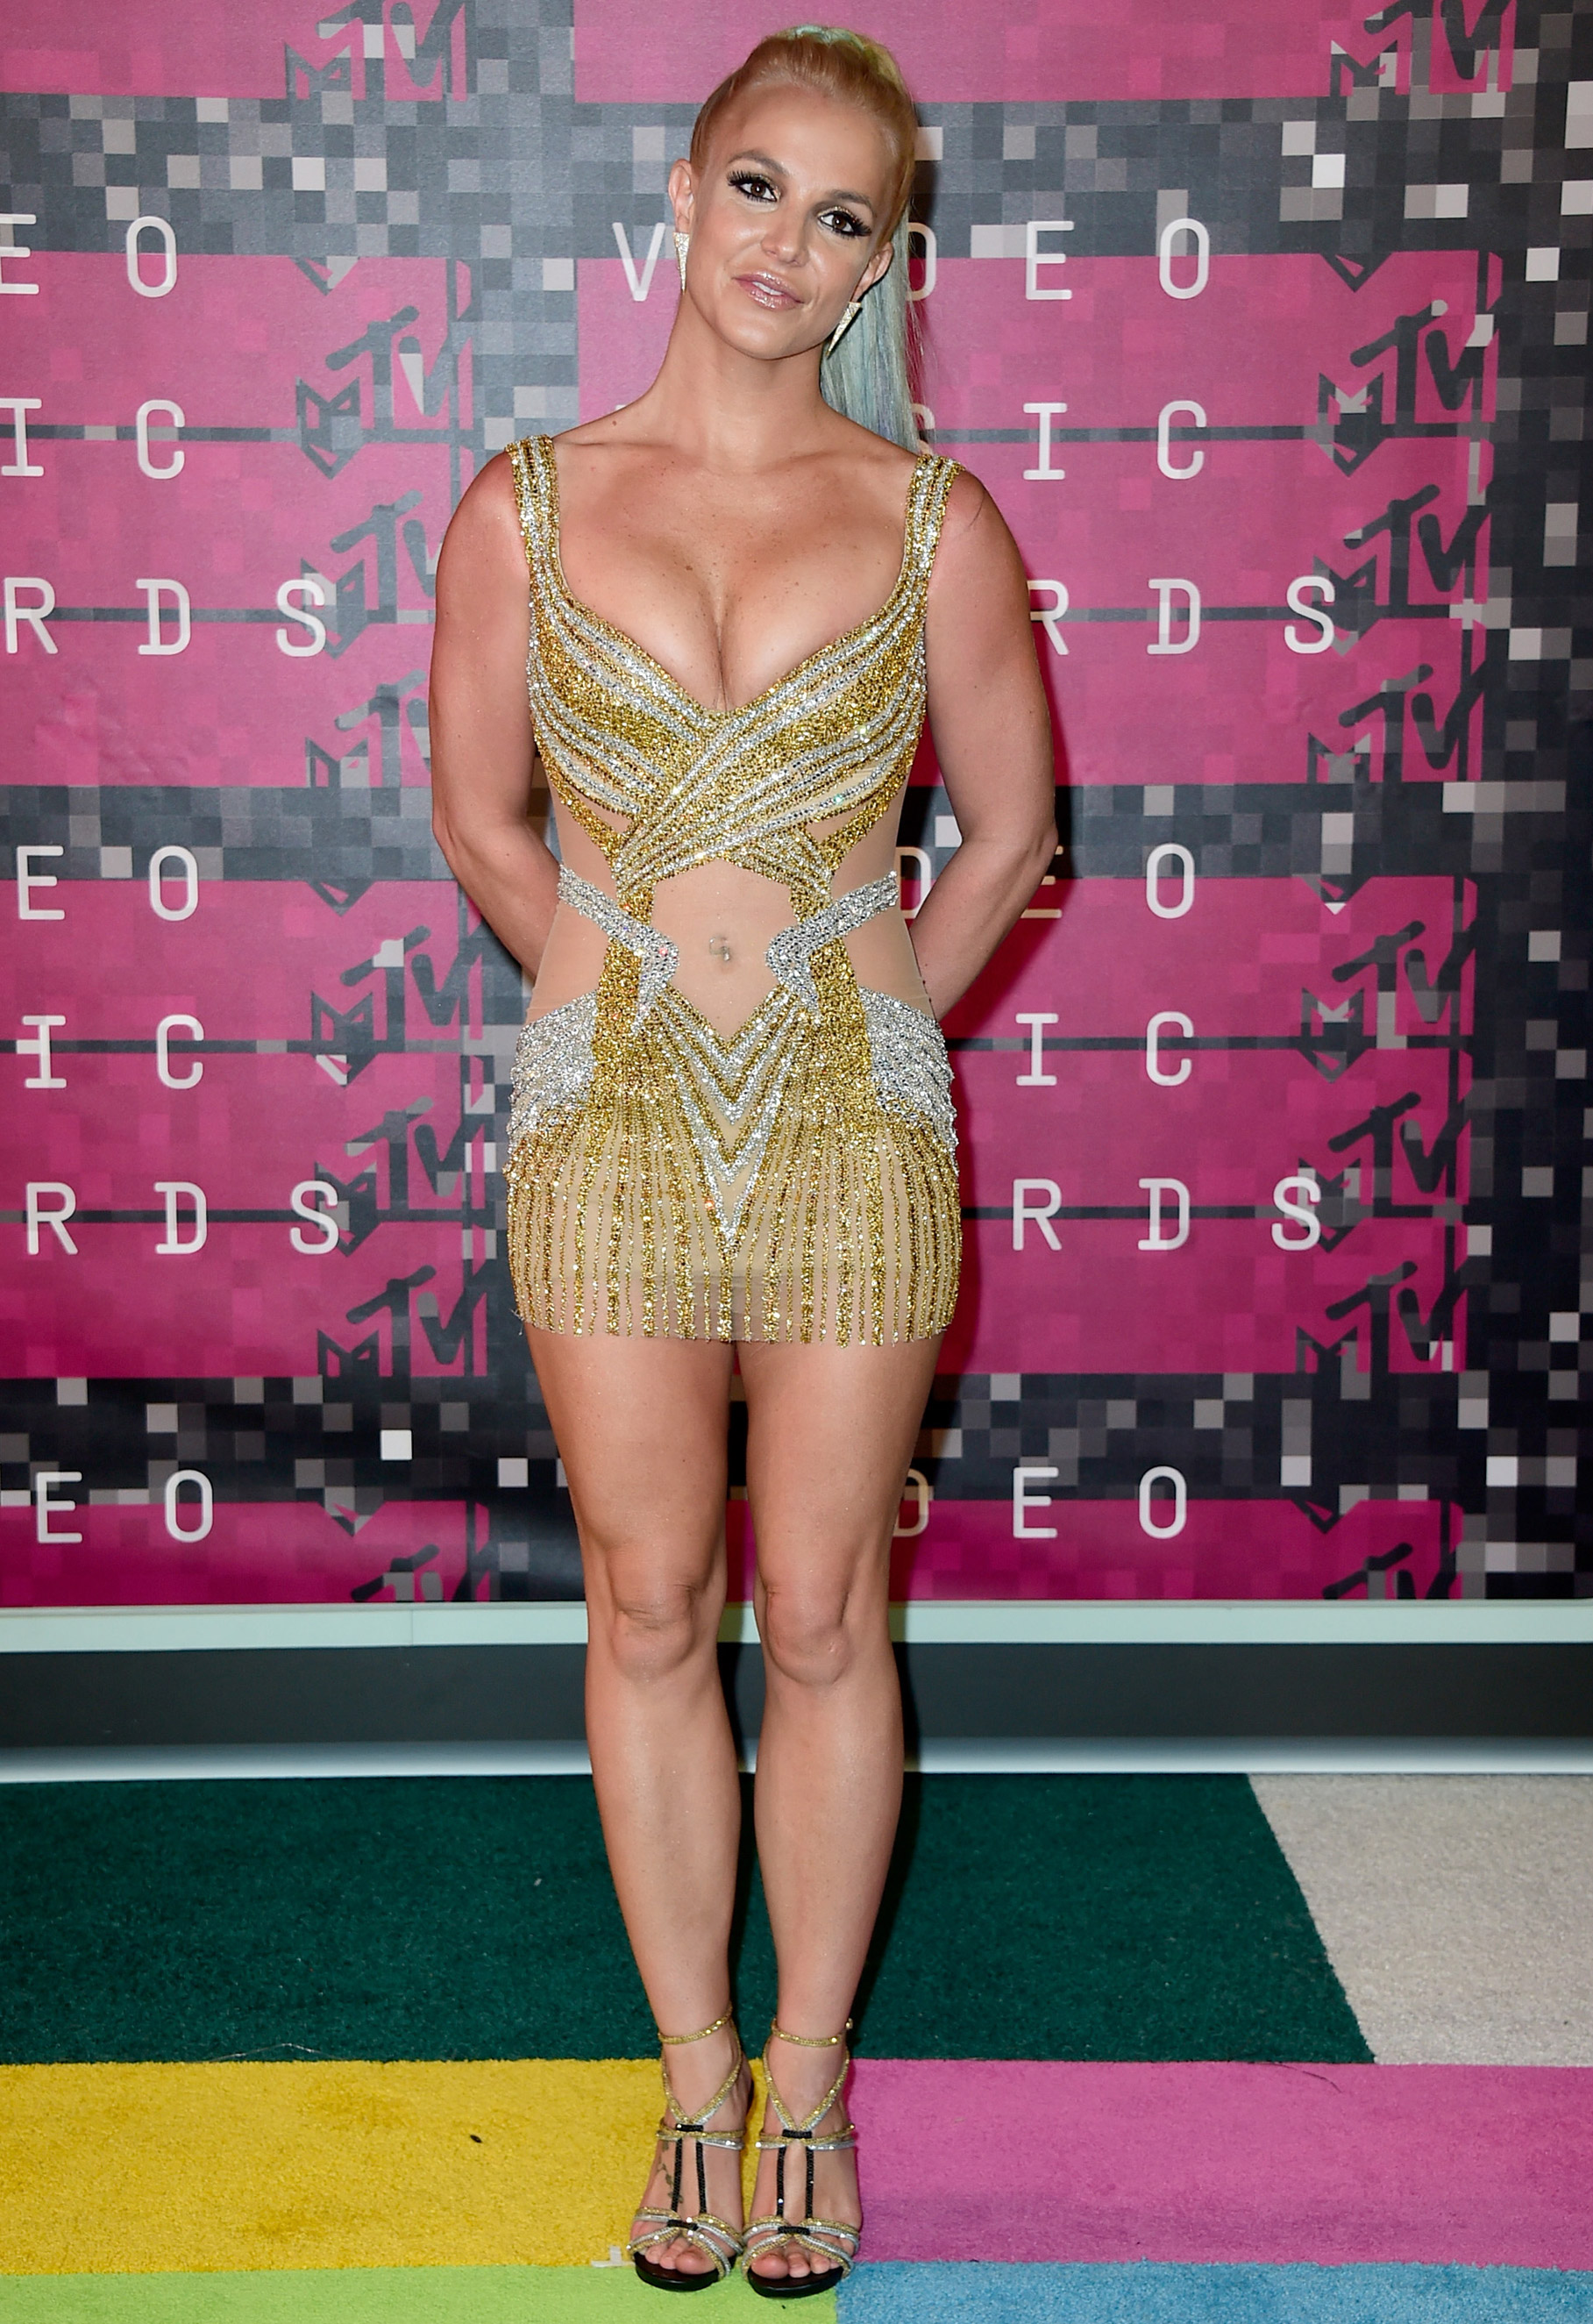 Britney Spears arrives at the 2015 MTV Video Music Awards at Microsoft Theater on Aug. 30, 2015 in Los Angeles.